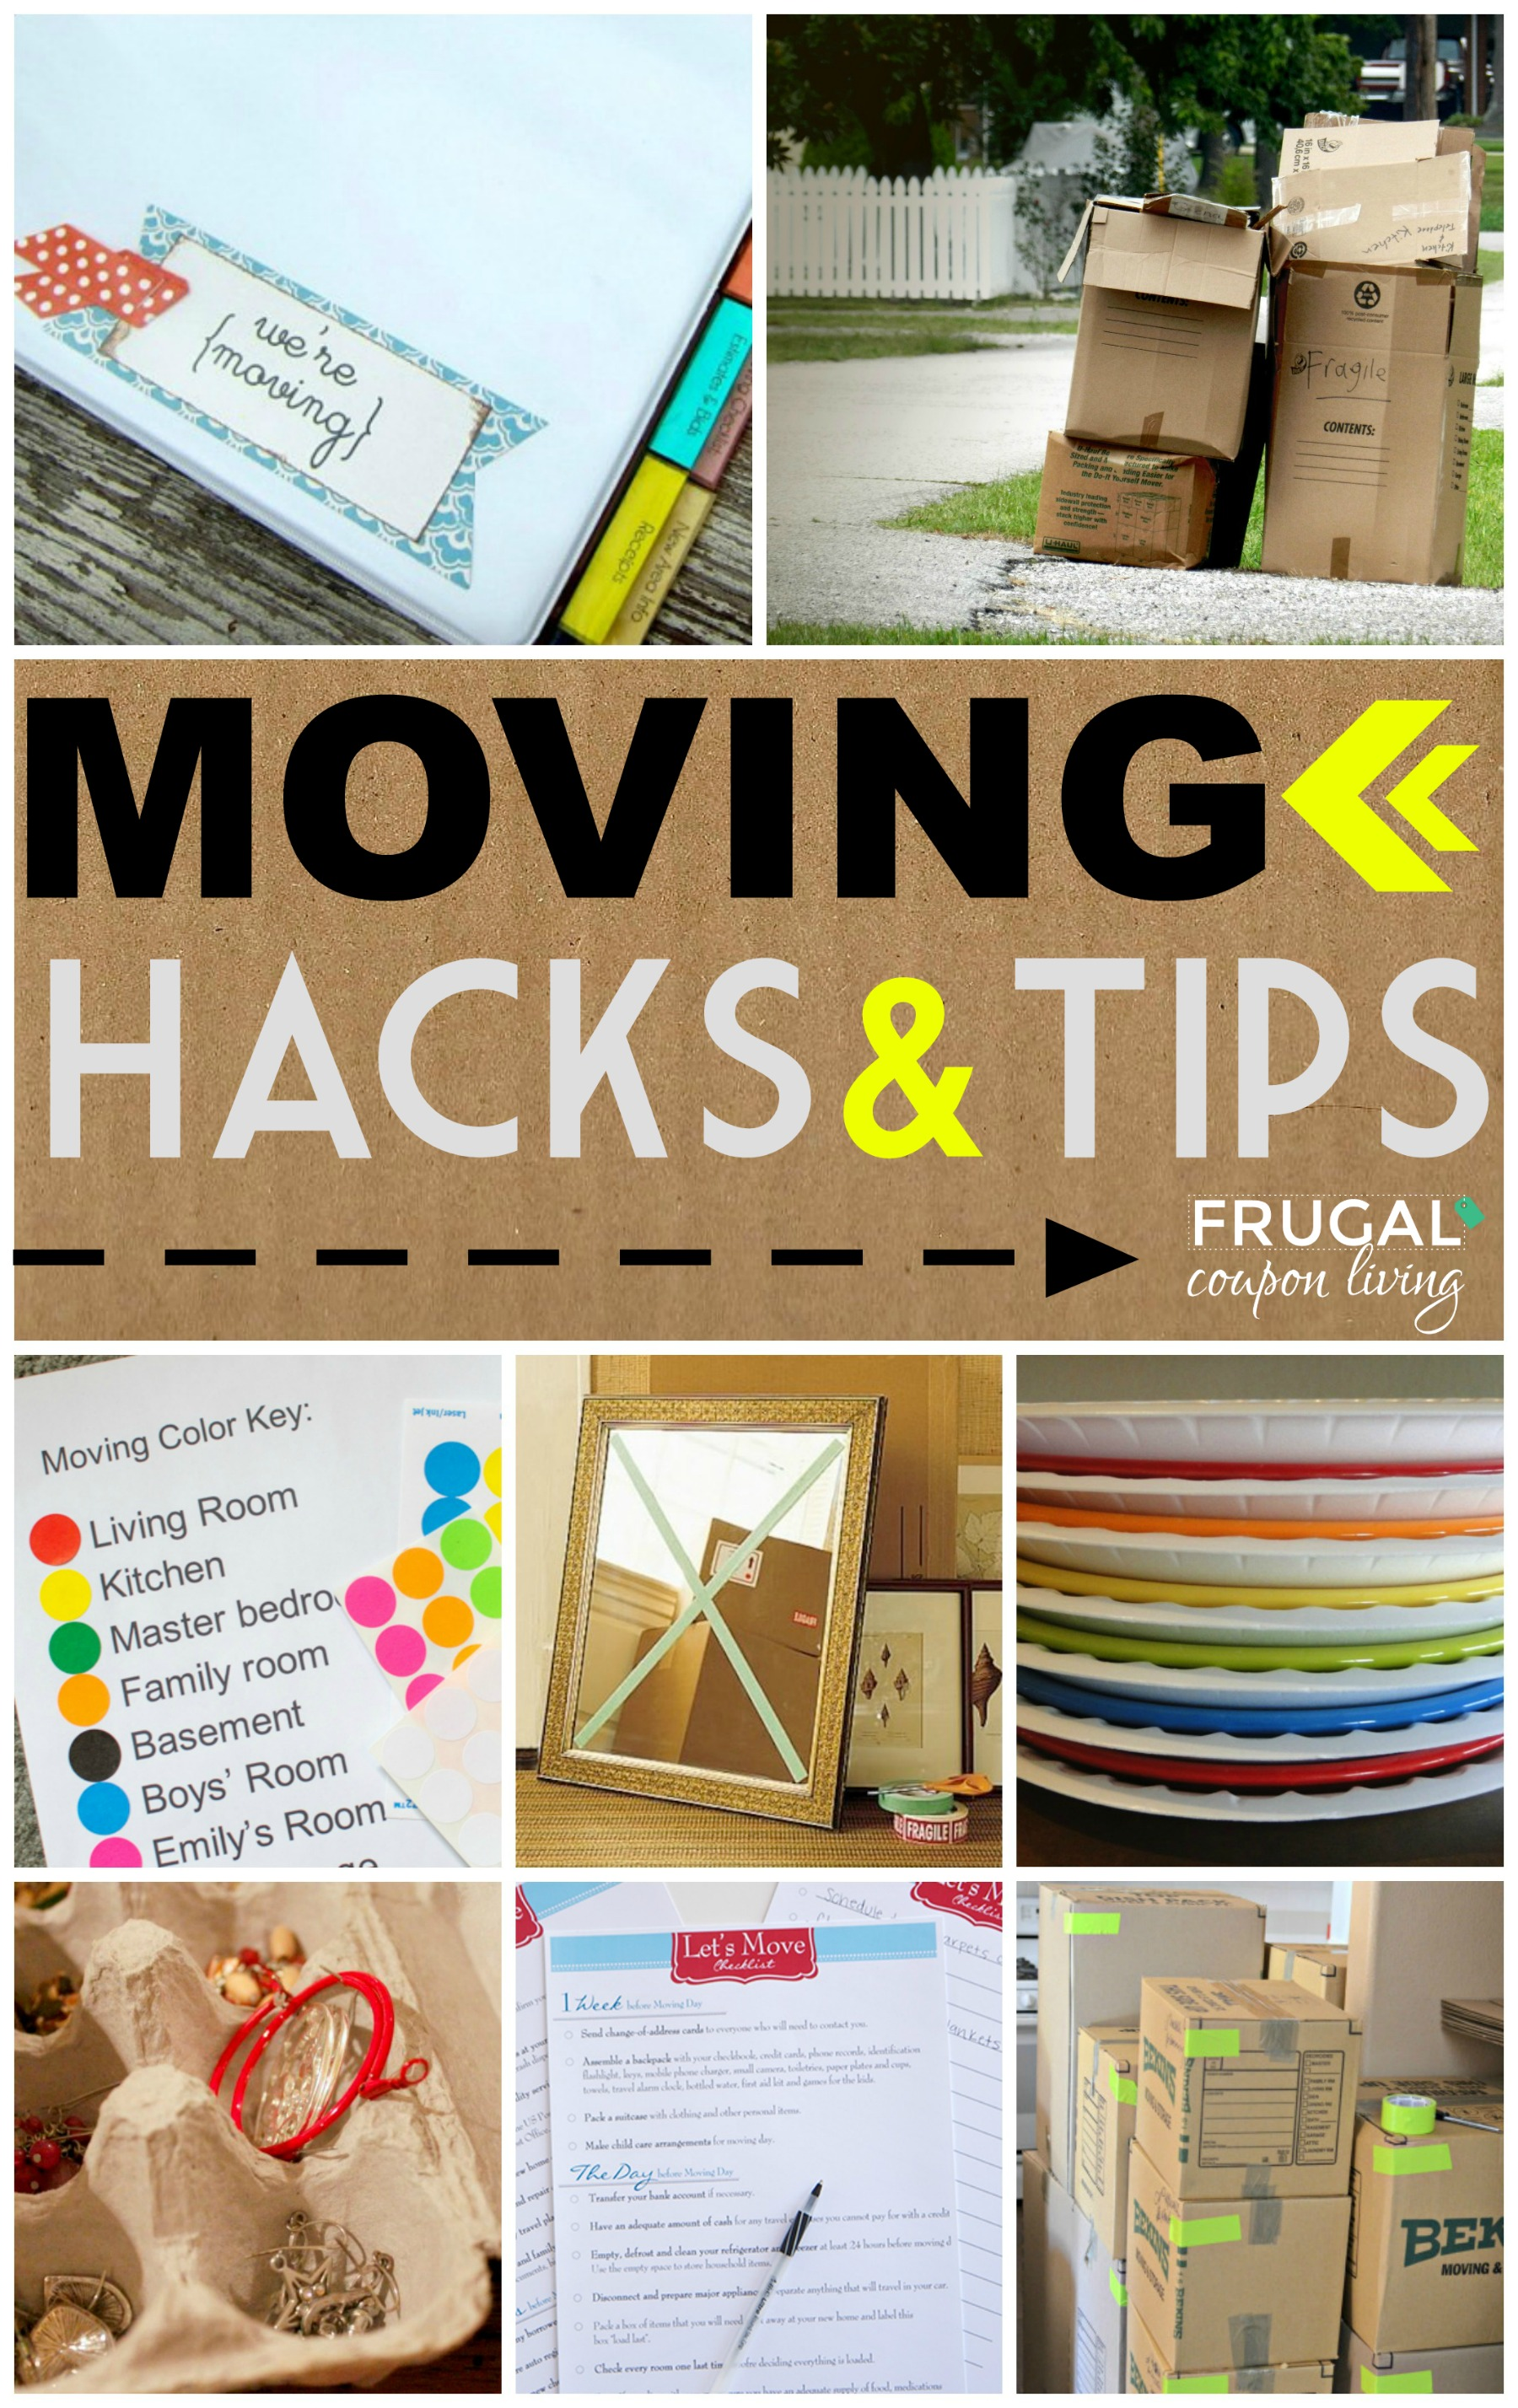 20 Smart Tips To Make Moving a Breeze - Help